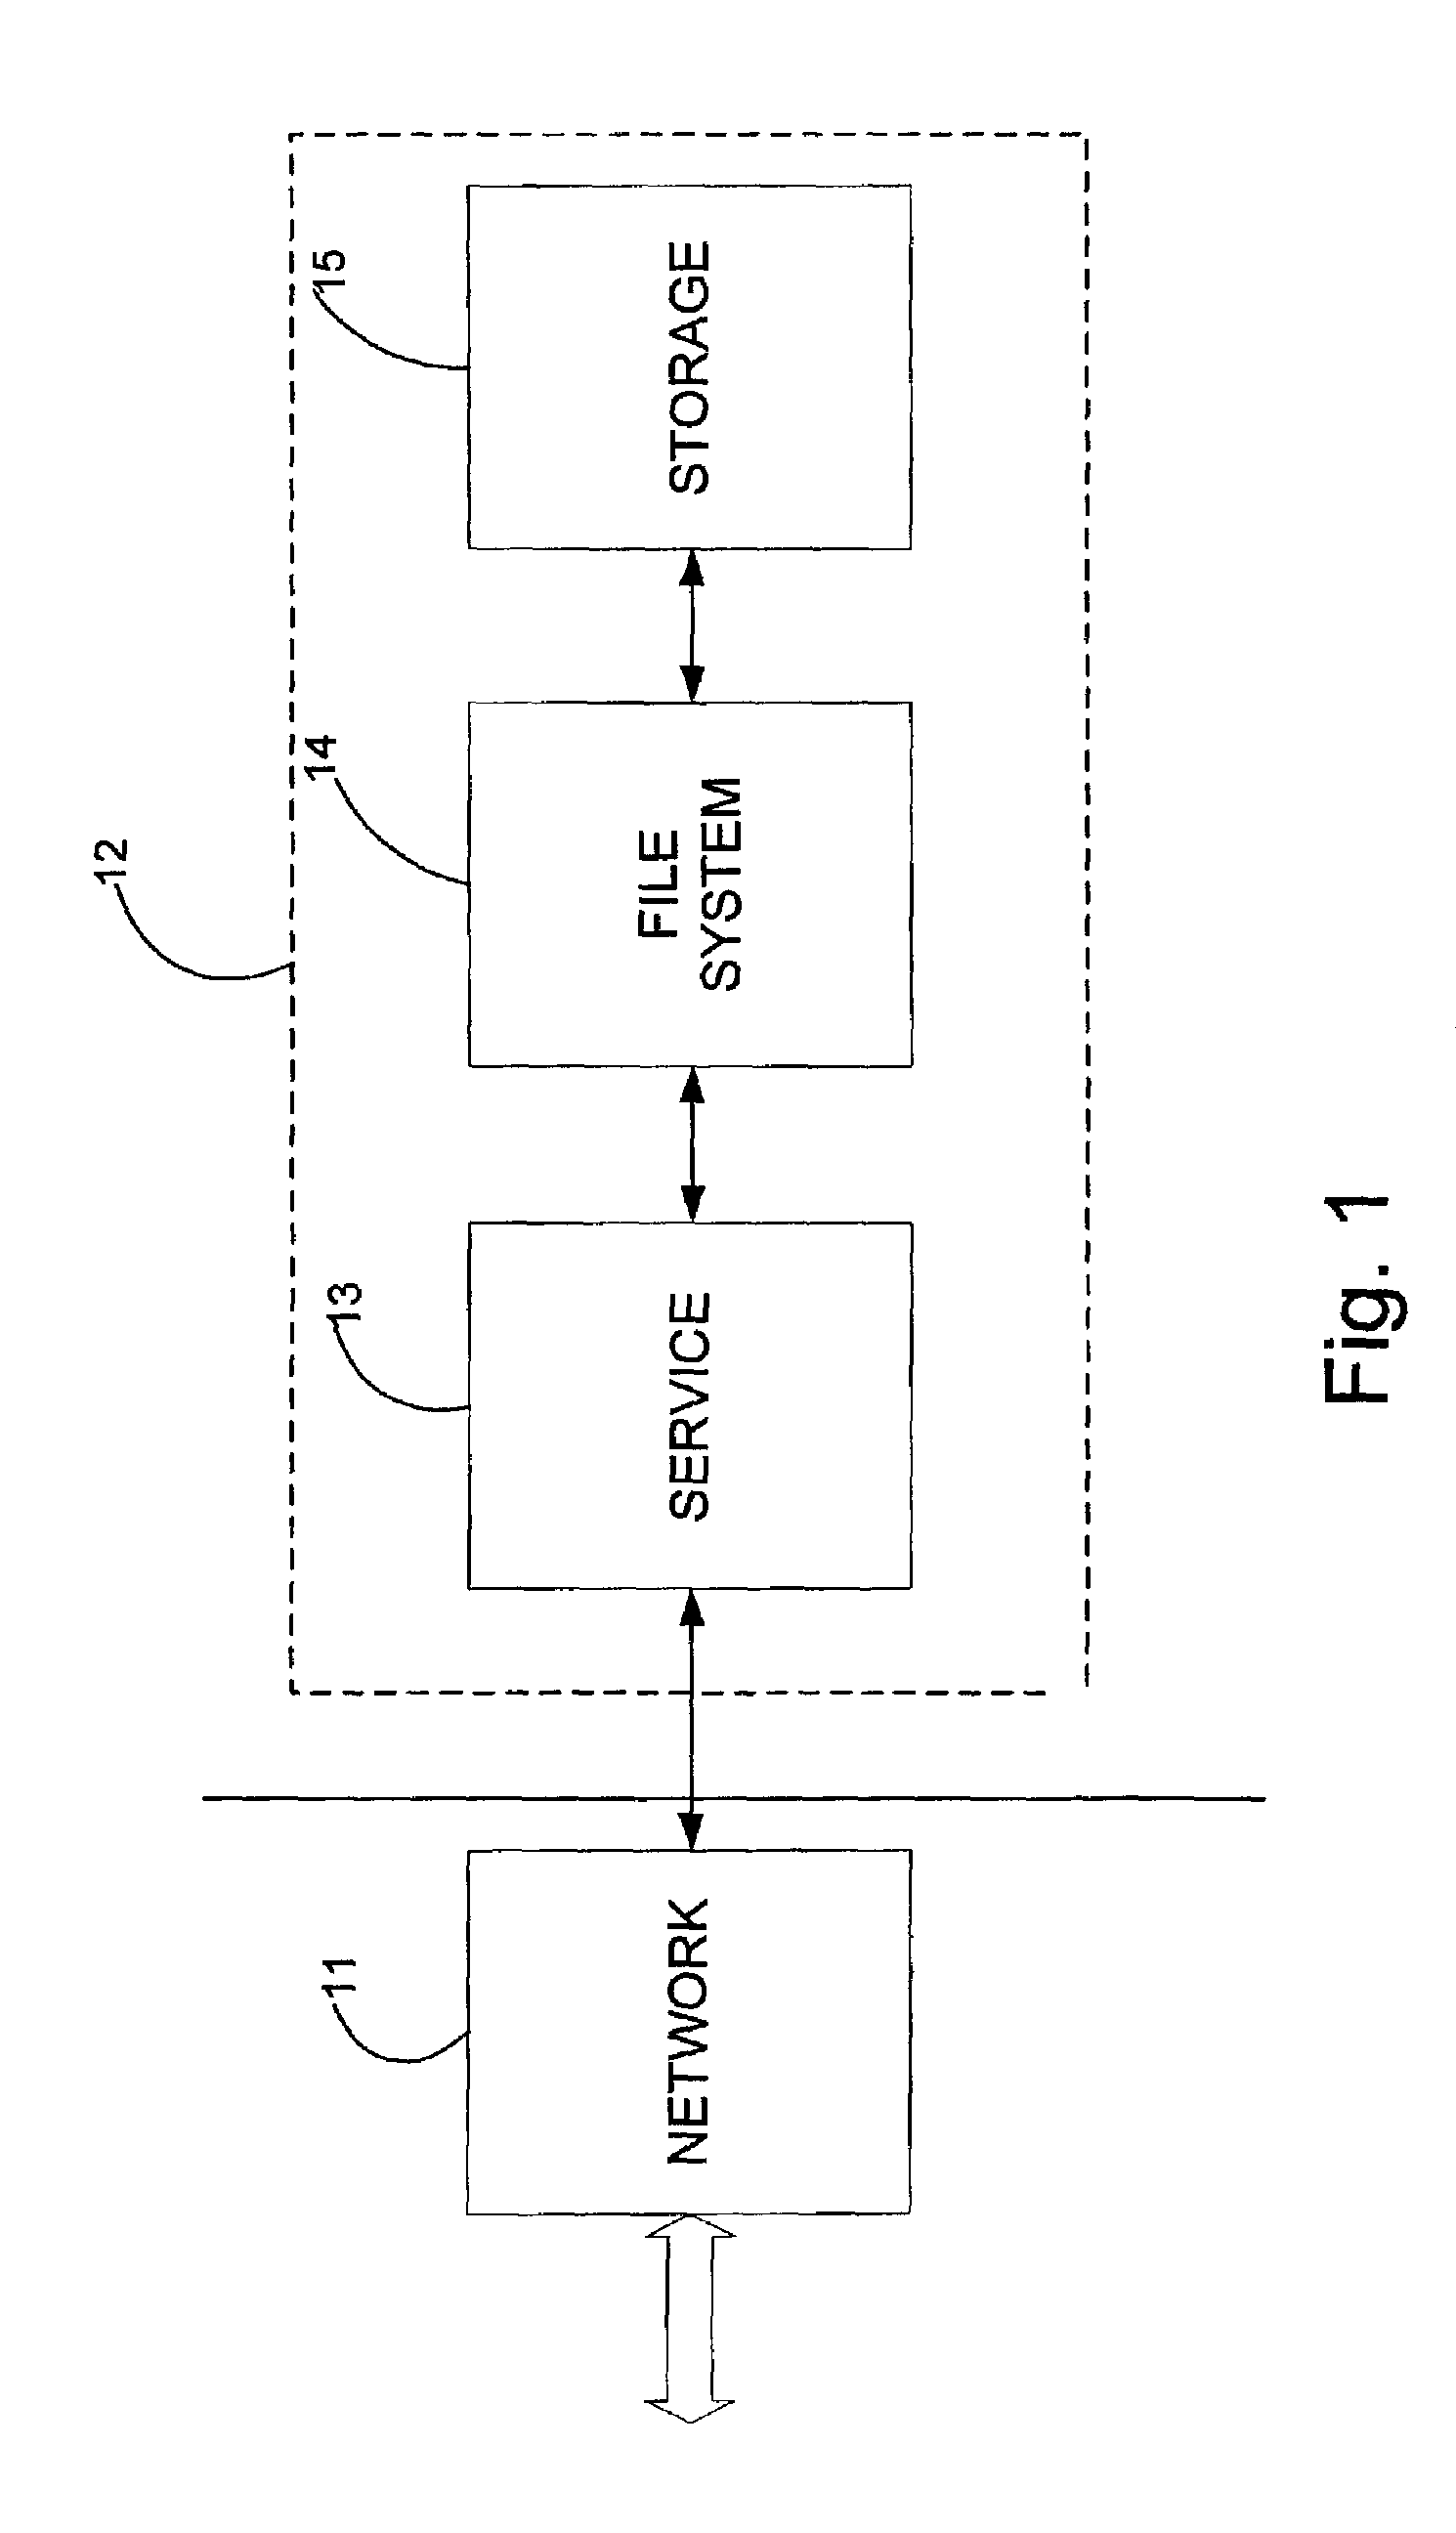 Patent Us8639731 Apparatus For Managing Plural Versions Of A Root Places By Using Two Twotwoway And One Intermediate Switch Drawing